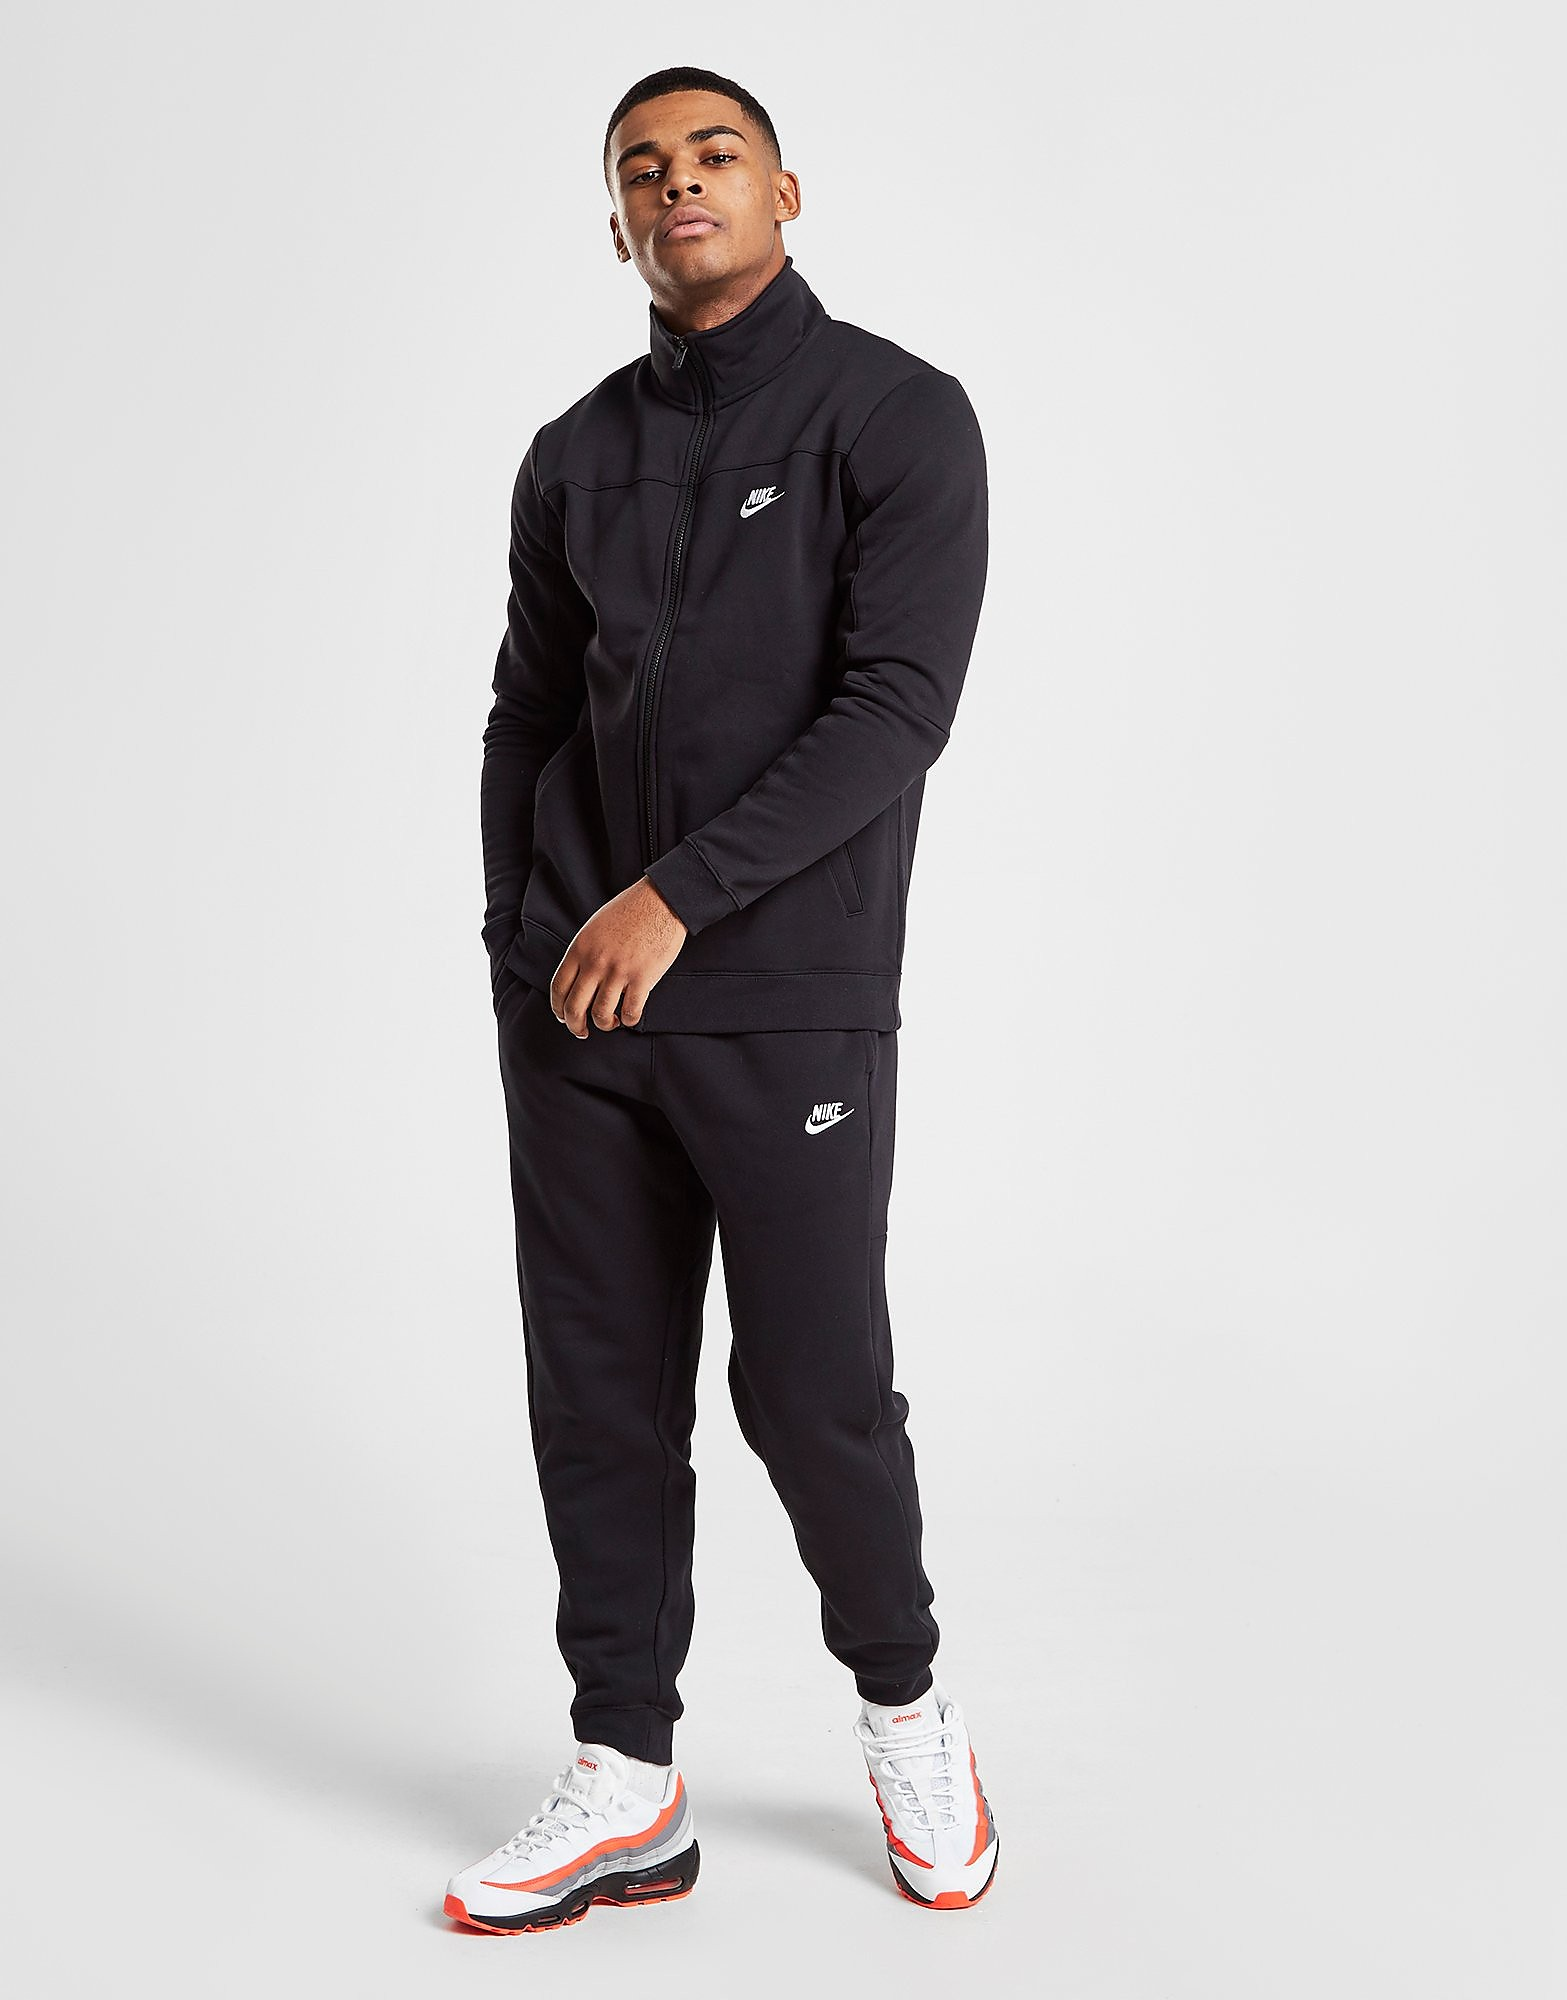 Nike Season 2 Fleece Tuta Sportiva